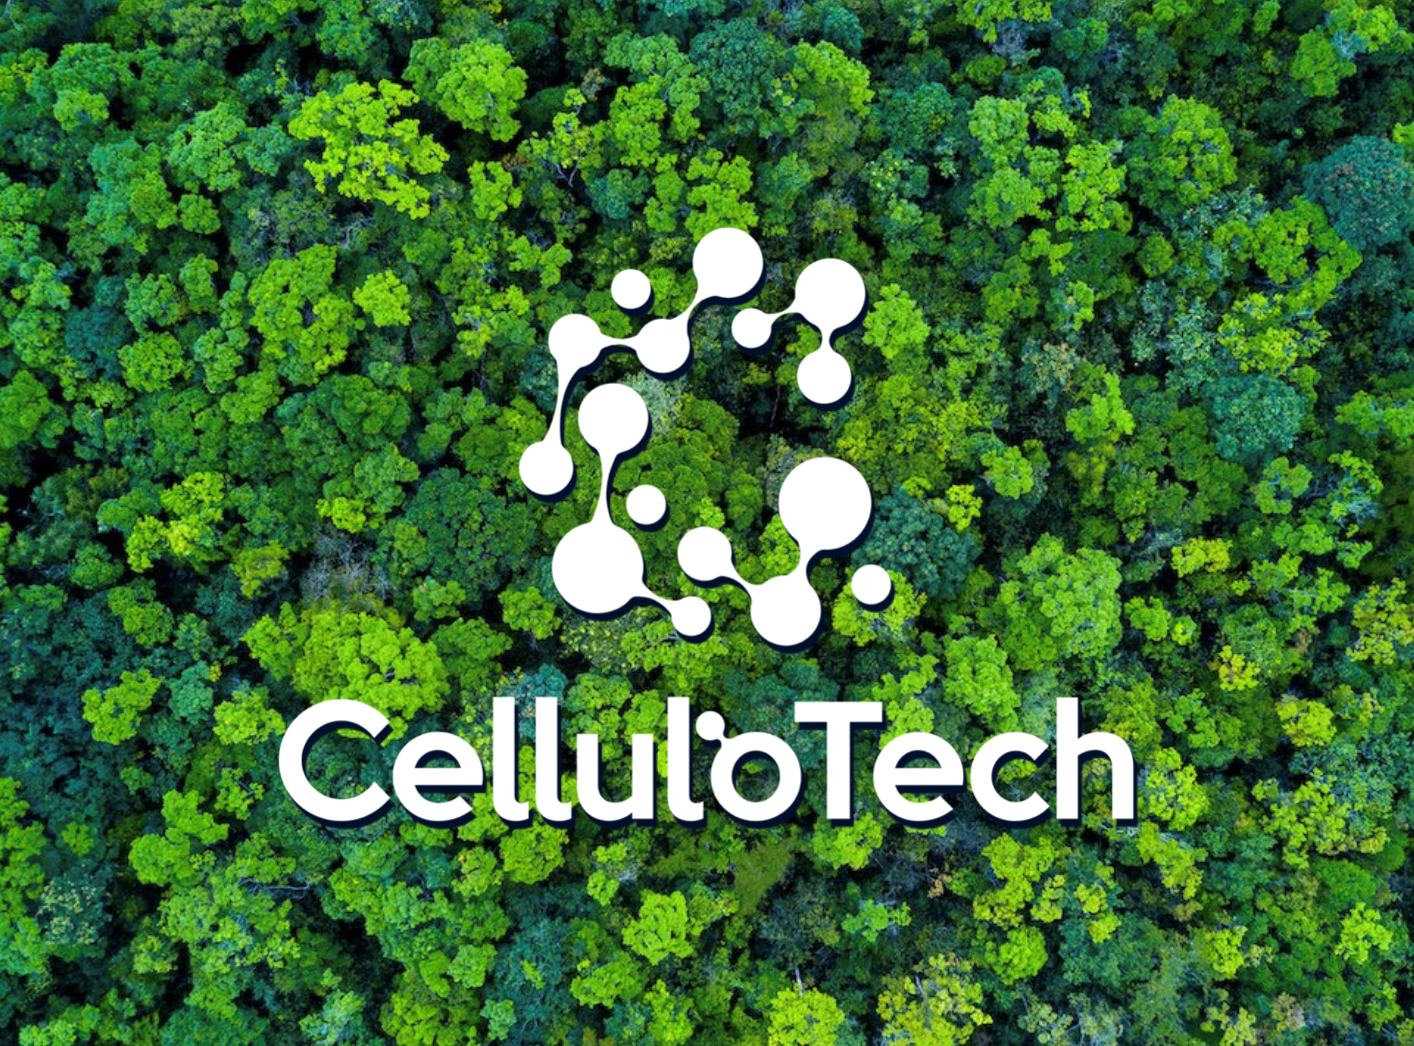 Cellulotech believes in cellulose as the key material of the 21st century